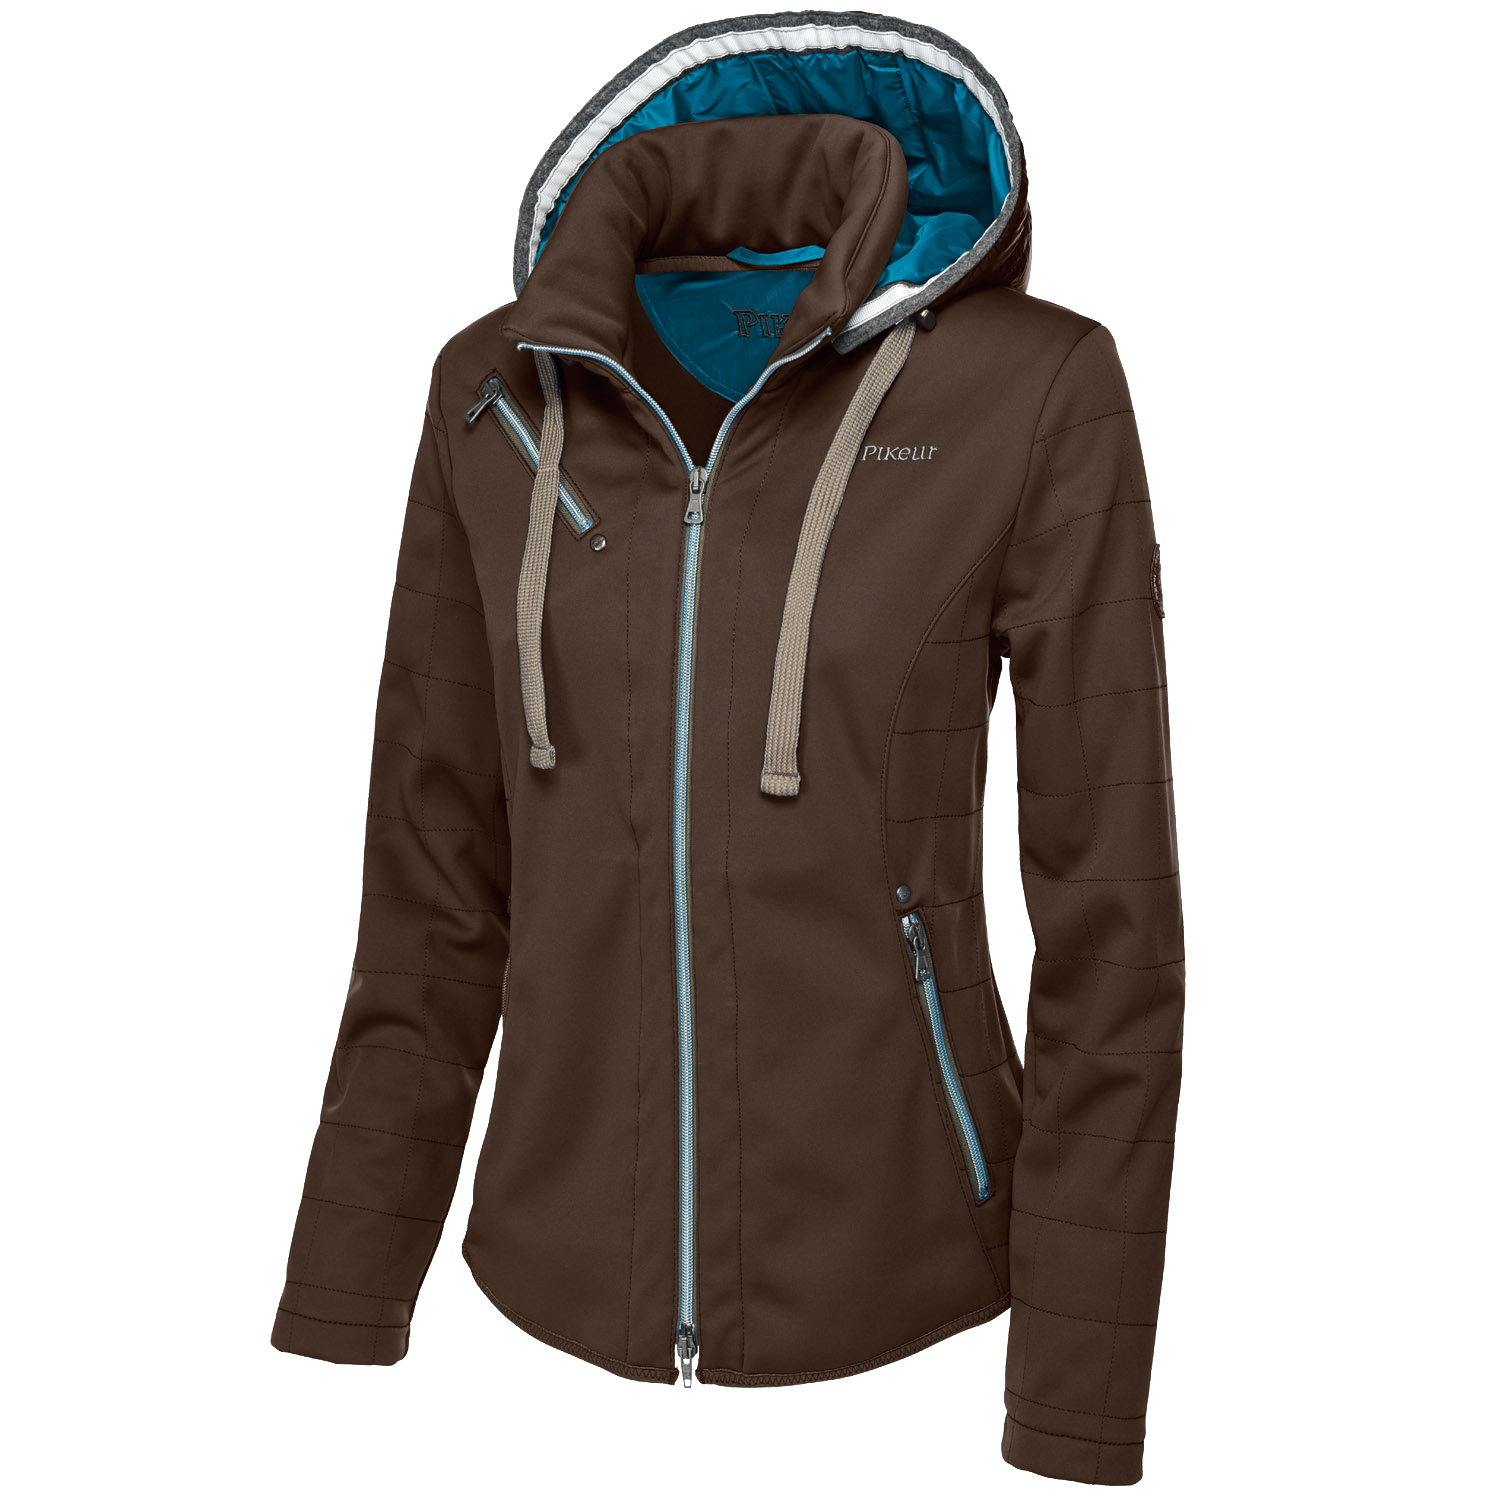 pikeur damen softshell jacke campera ebay. Black Bedroom Furniture Sets. Home Design Ideas